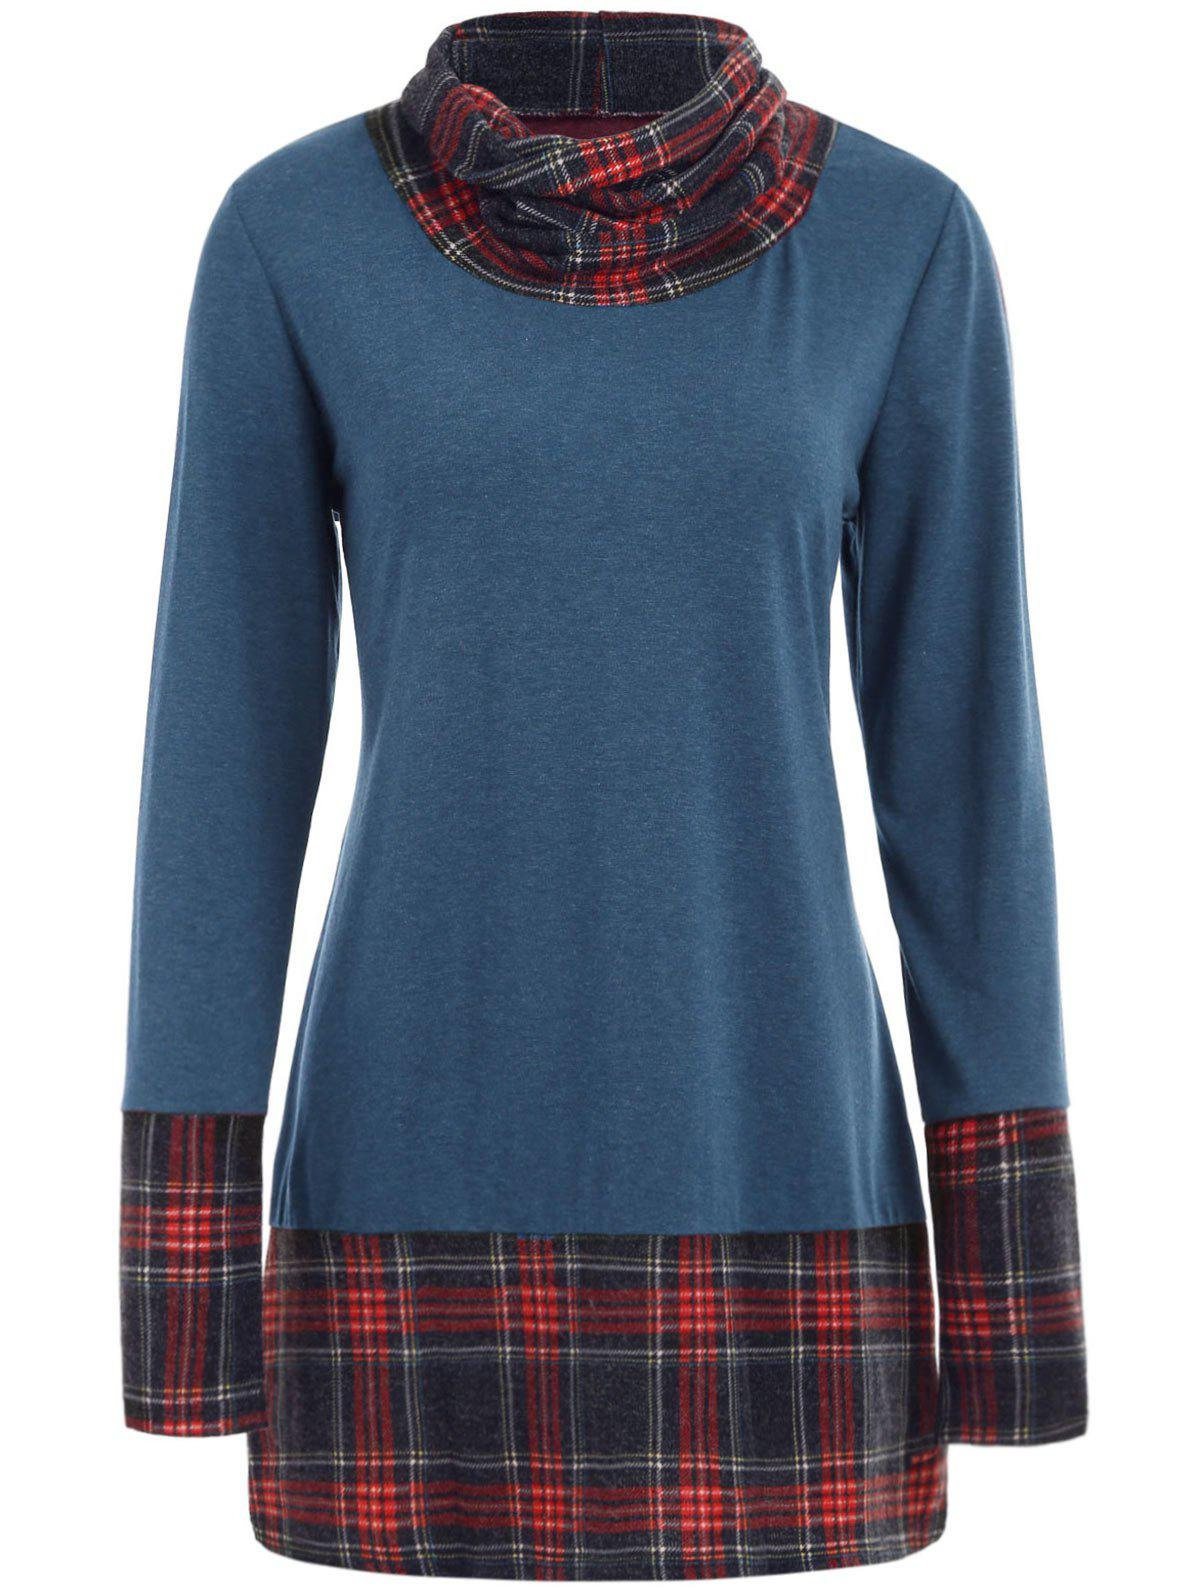 Plaid Detail Plus Size Cowl Neck Sweatshirt